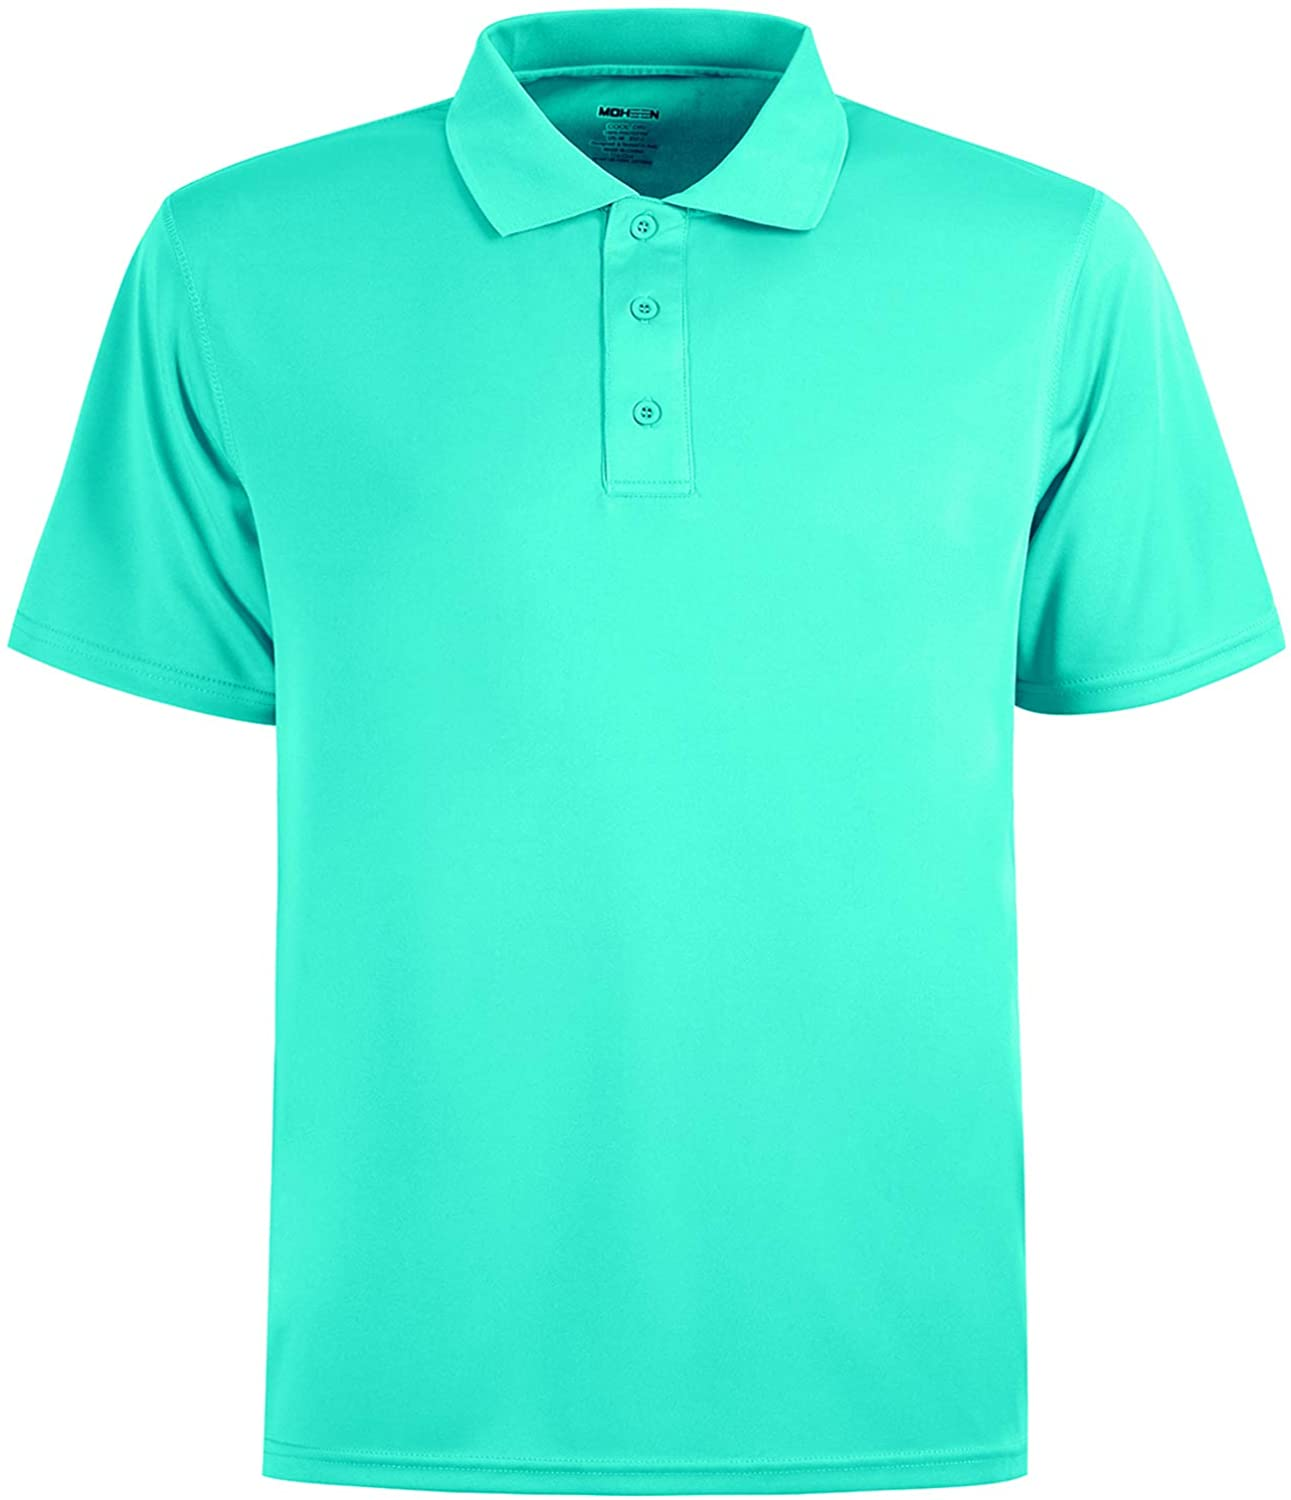 MOHEEN Men's Quick Dry Short Sleeve Polo Shirts UV Protection Outdoor Athletic Golf T-Shirts